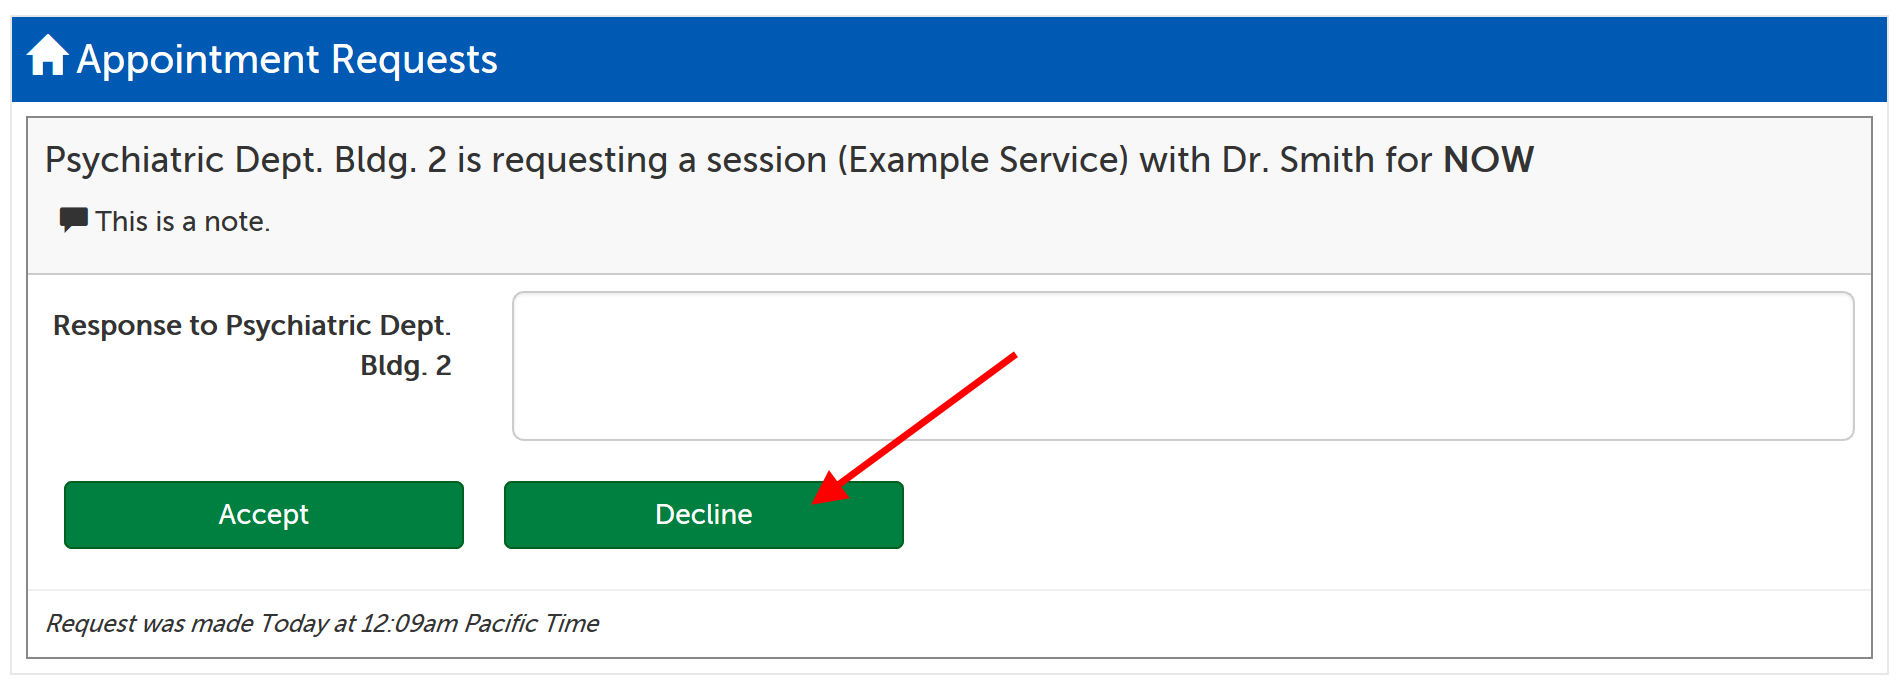 Decline option